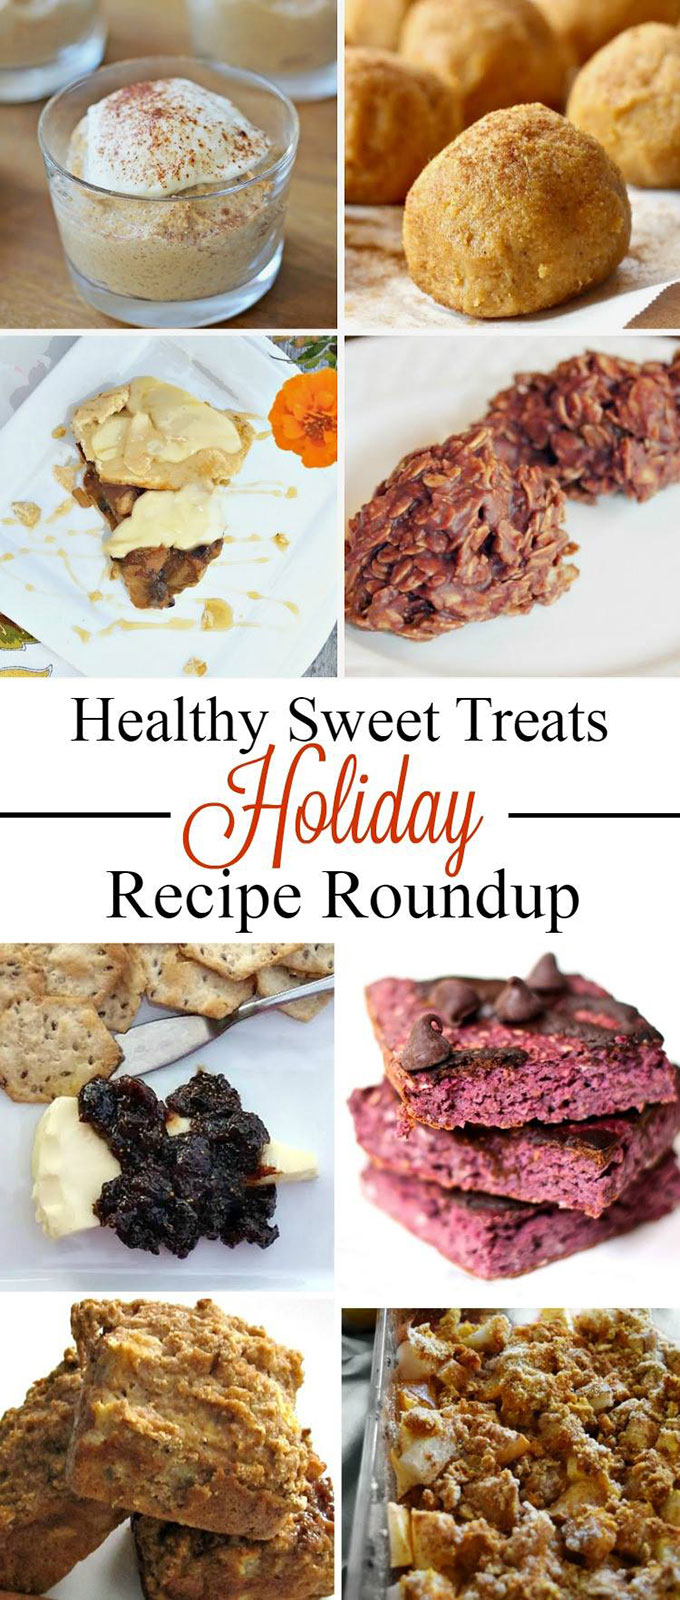 Enjoy delicious, decadent desserts without all the guilt. Give some or all of these Gluten-Free, Sugar-Free Holiday Delights a try this season.